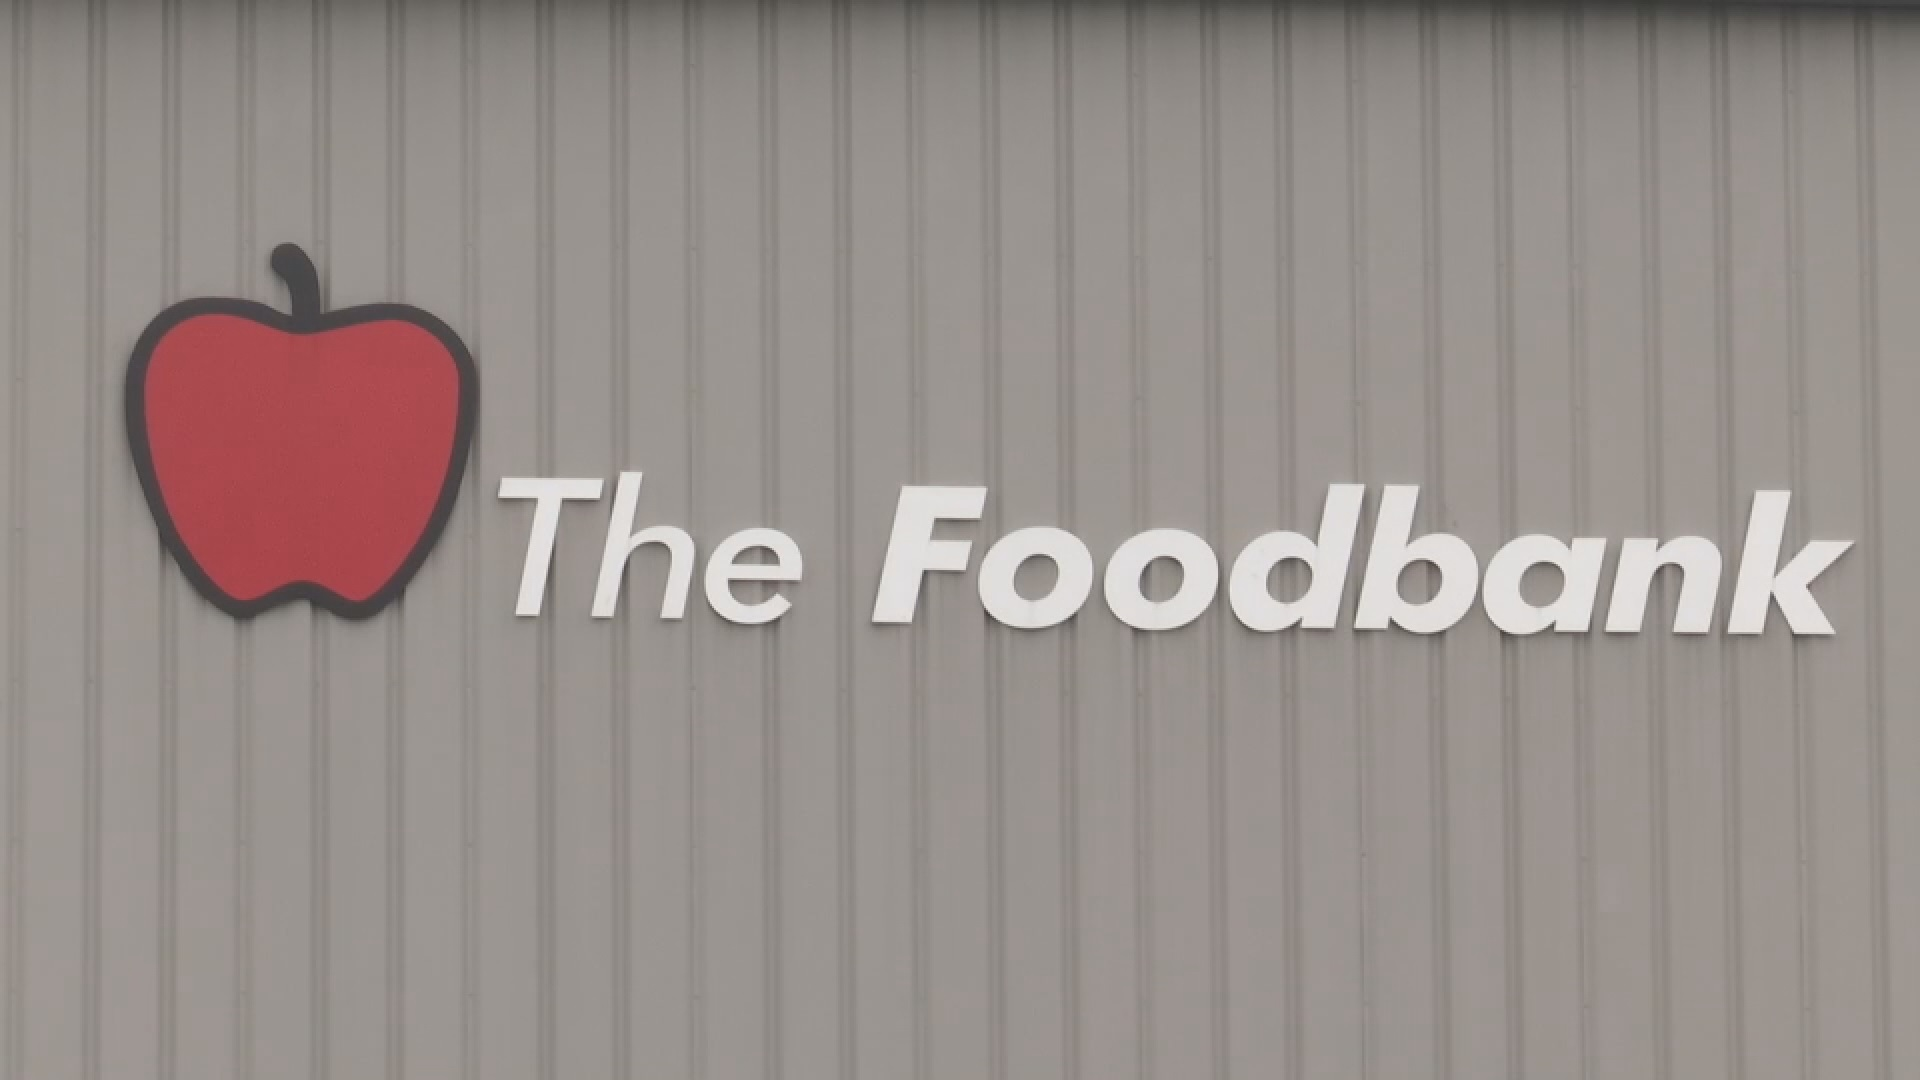 Beau Townsend Ford >> Beau Townsend Ford To Match Foodbank Donations Through June